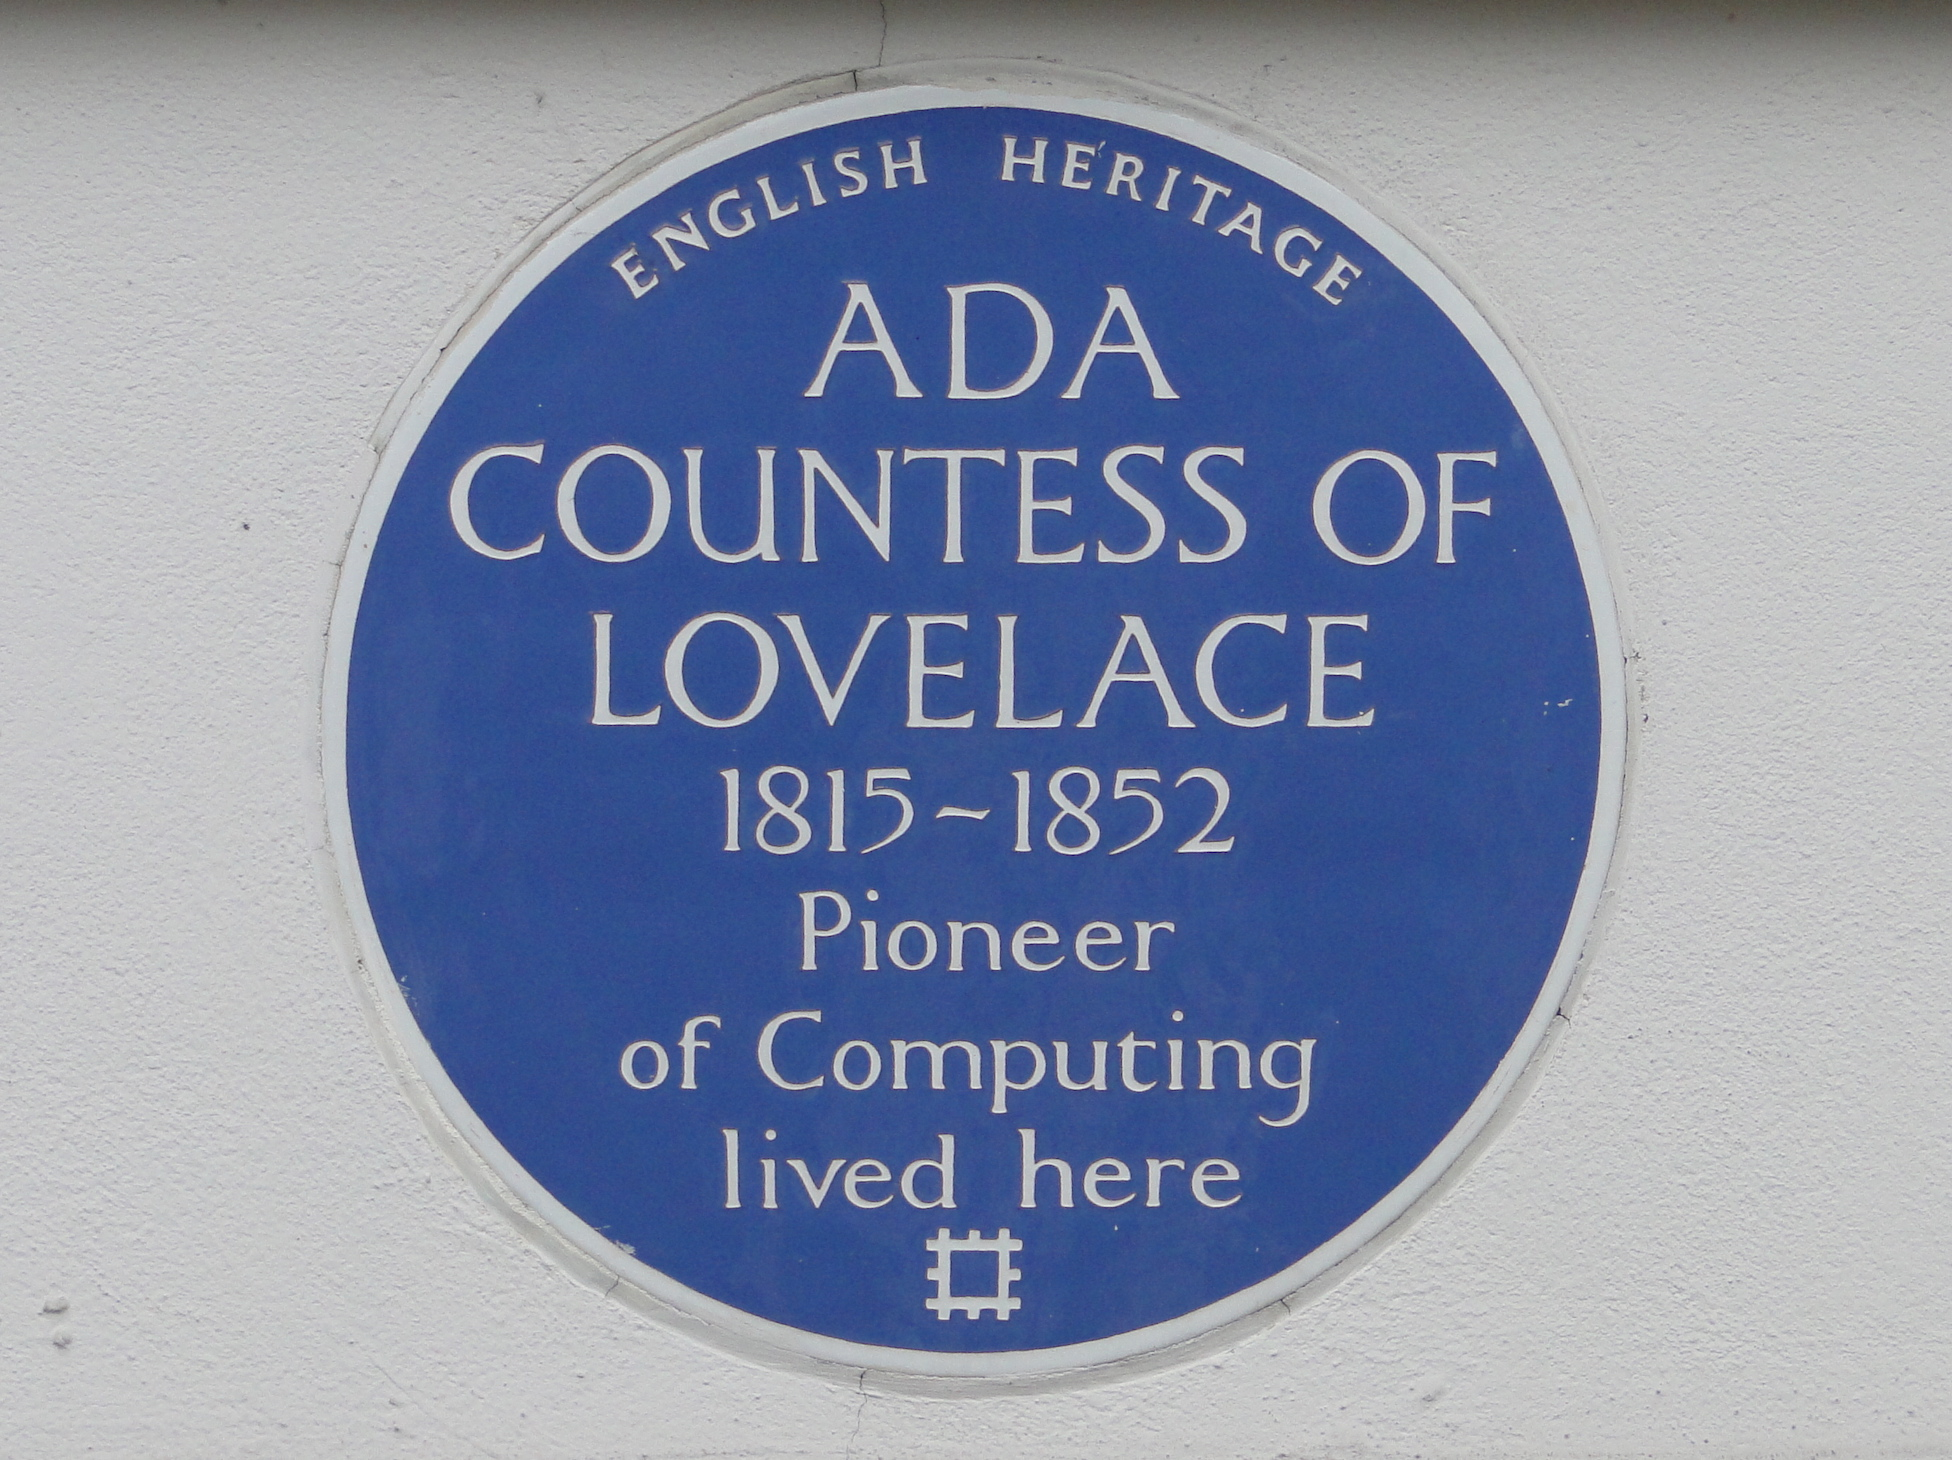 Celebrating Ada Lovelace Week – Day 5 An Interview with Claudia